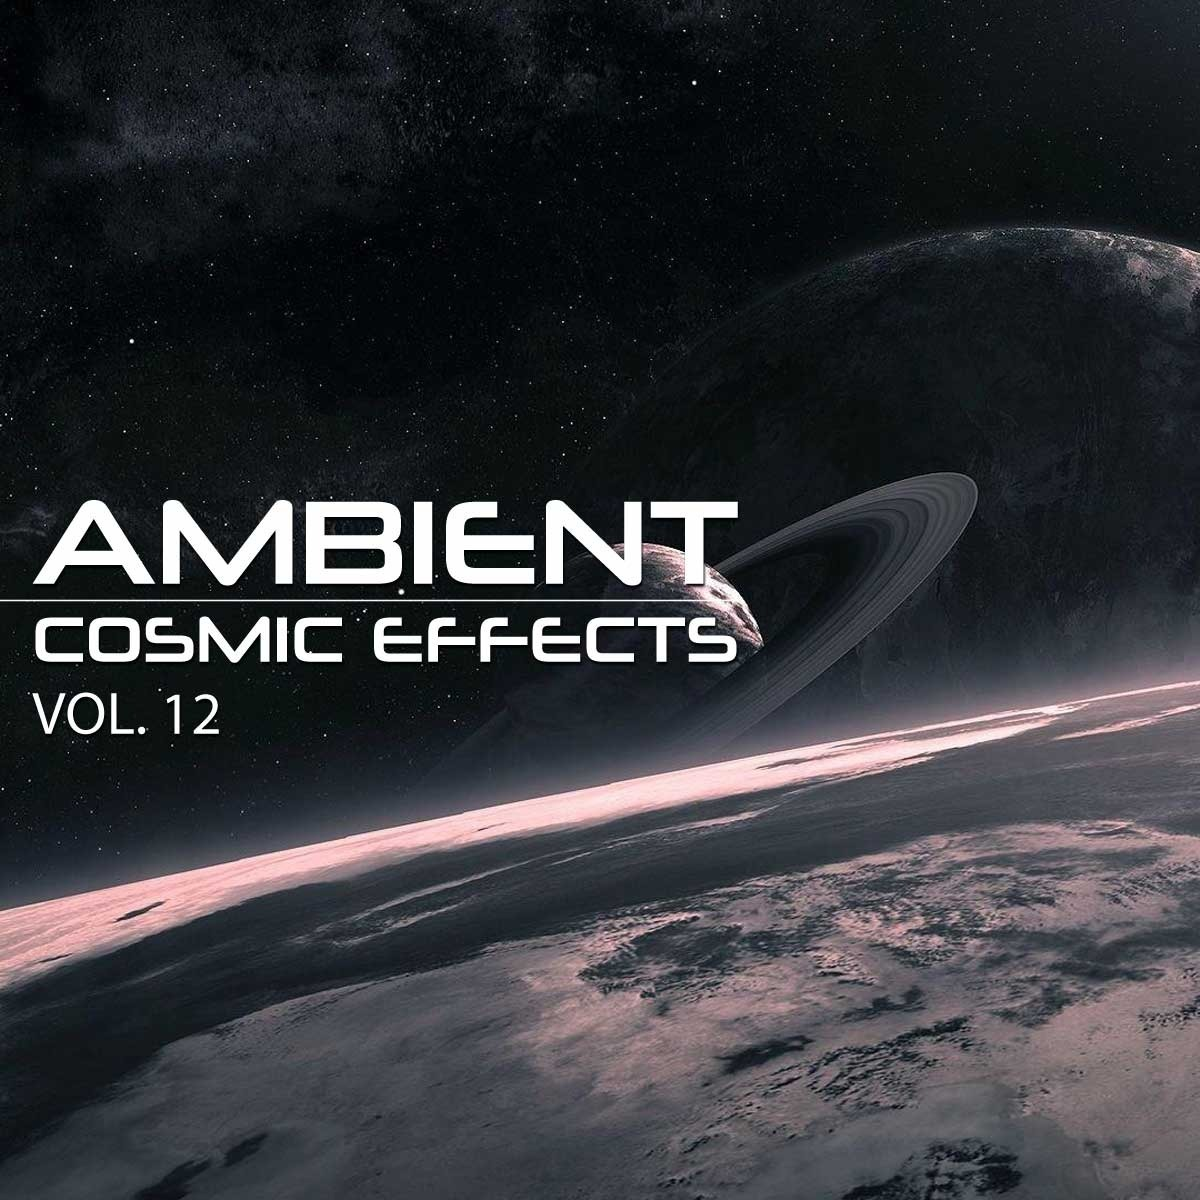 Ambient Cosmic Effects Vol 12